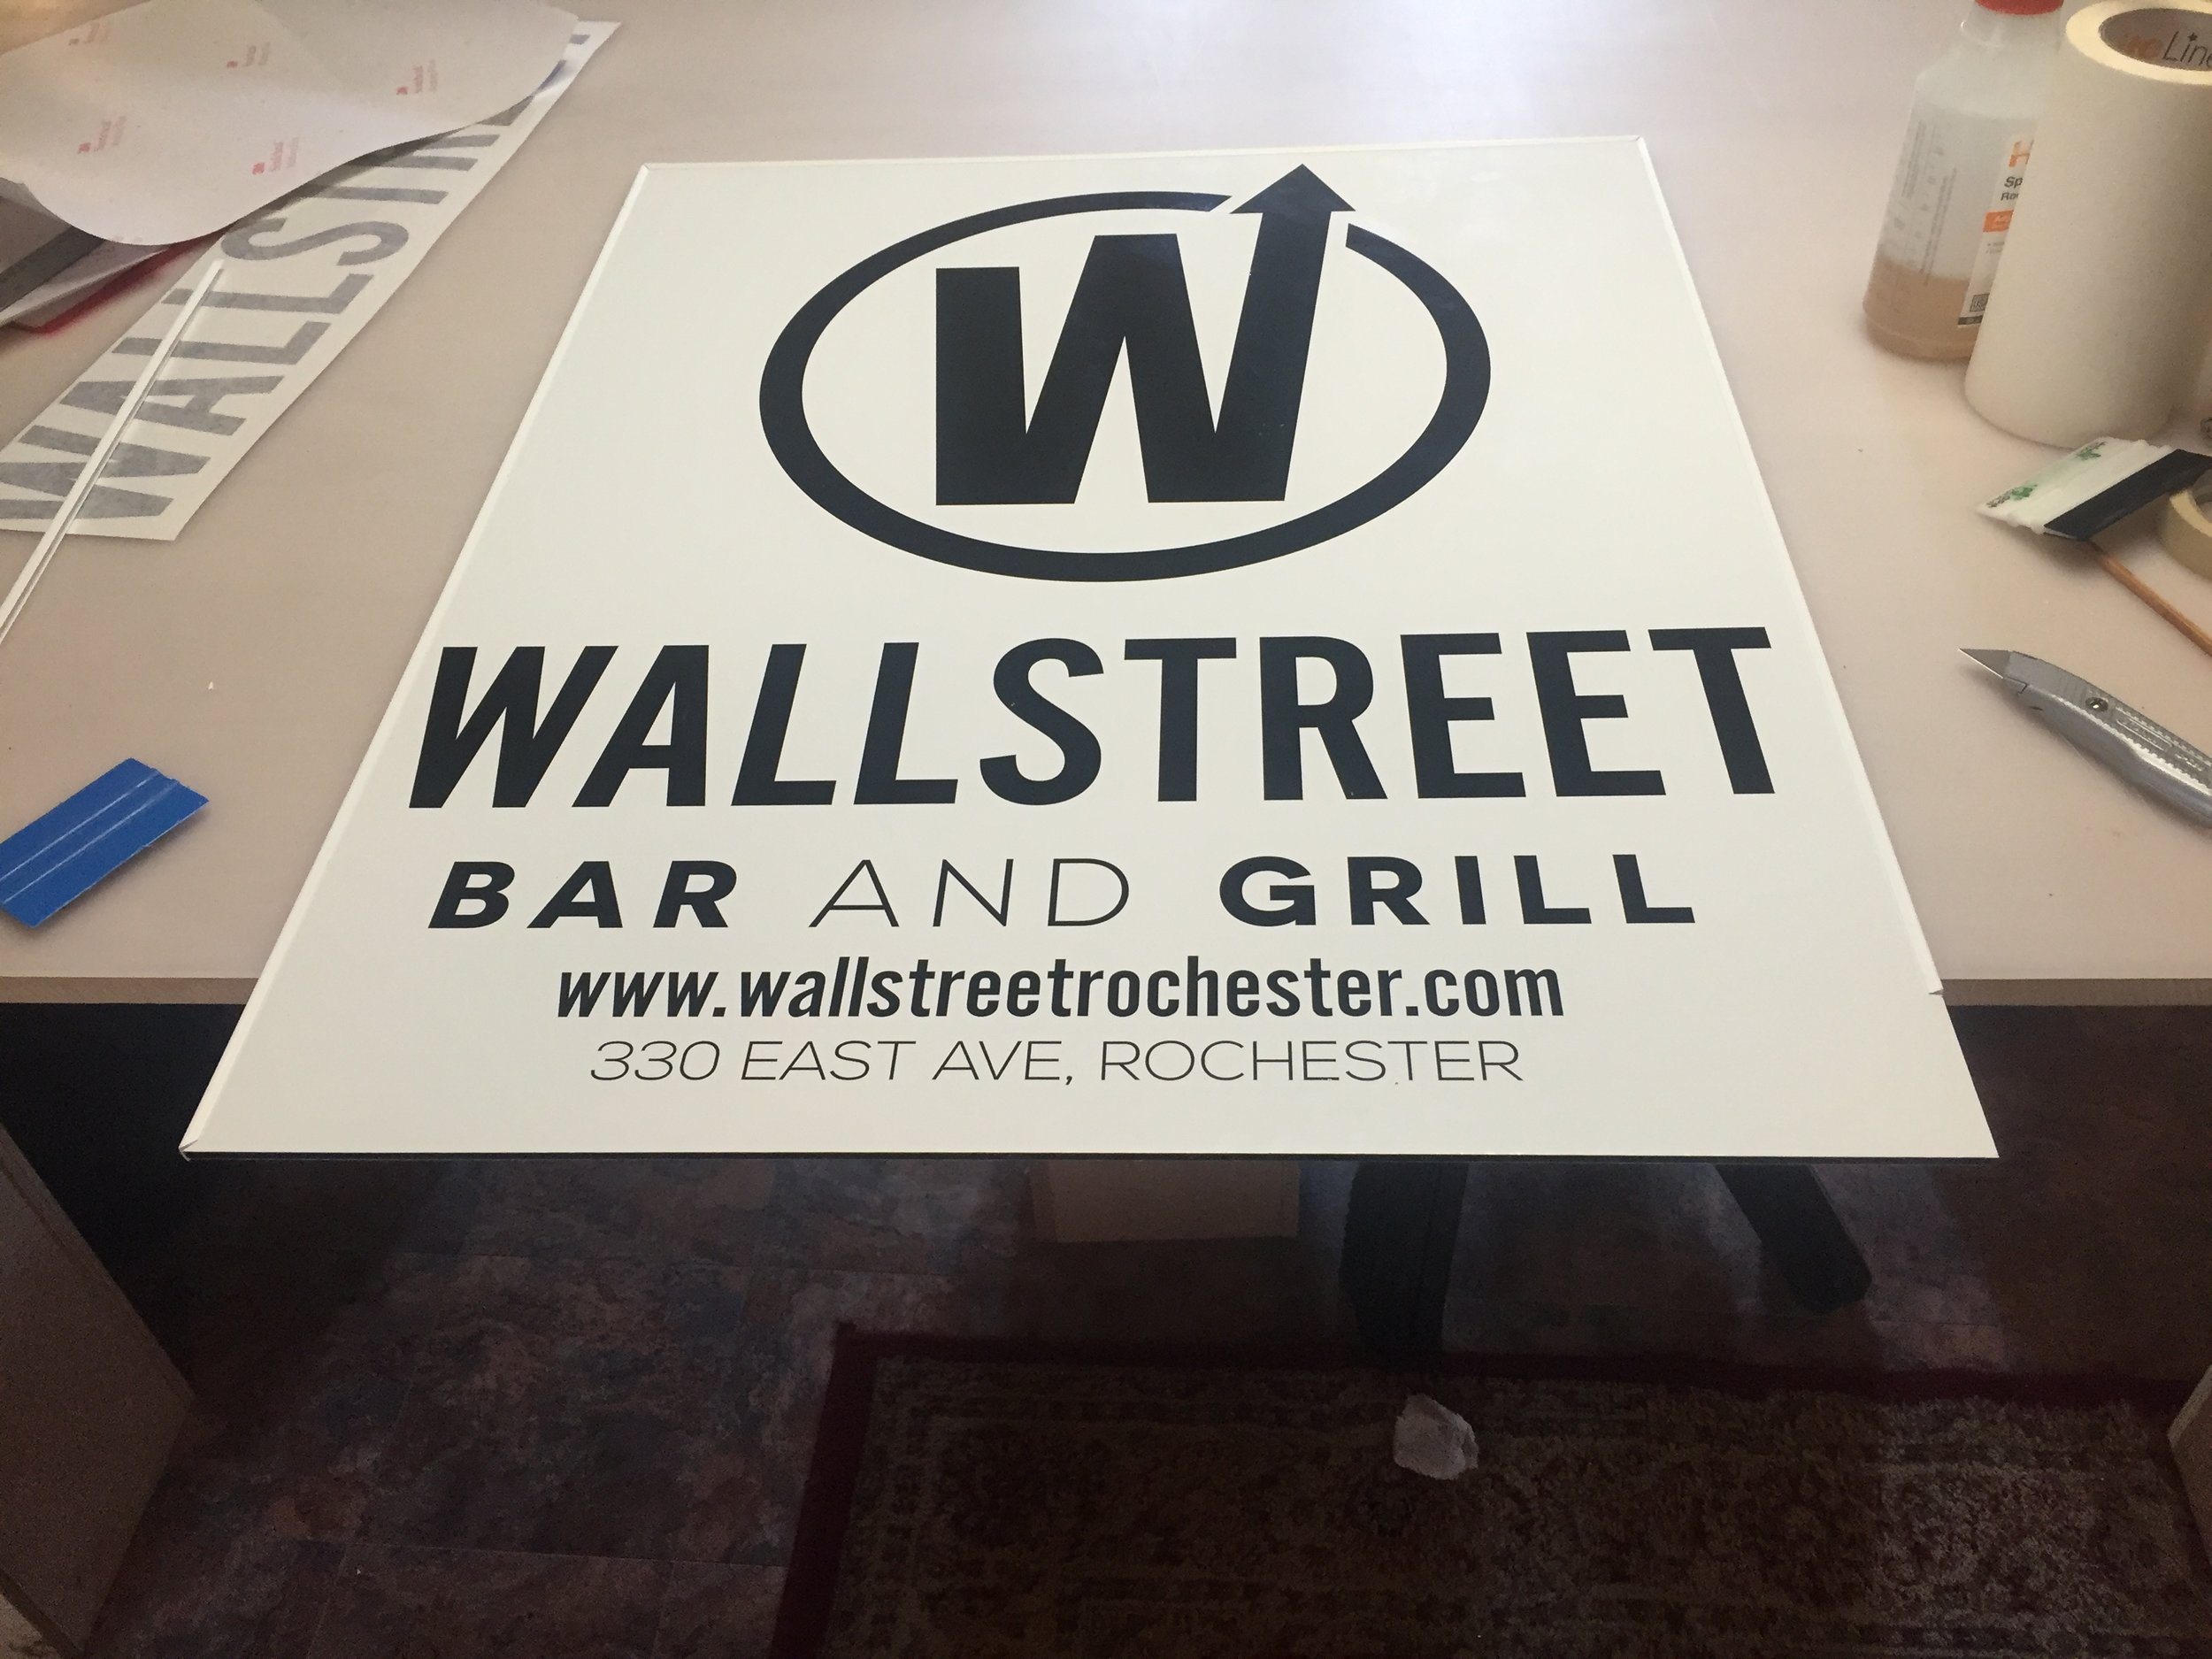 Wallstreet Bar and Grill